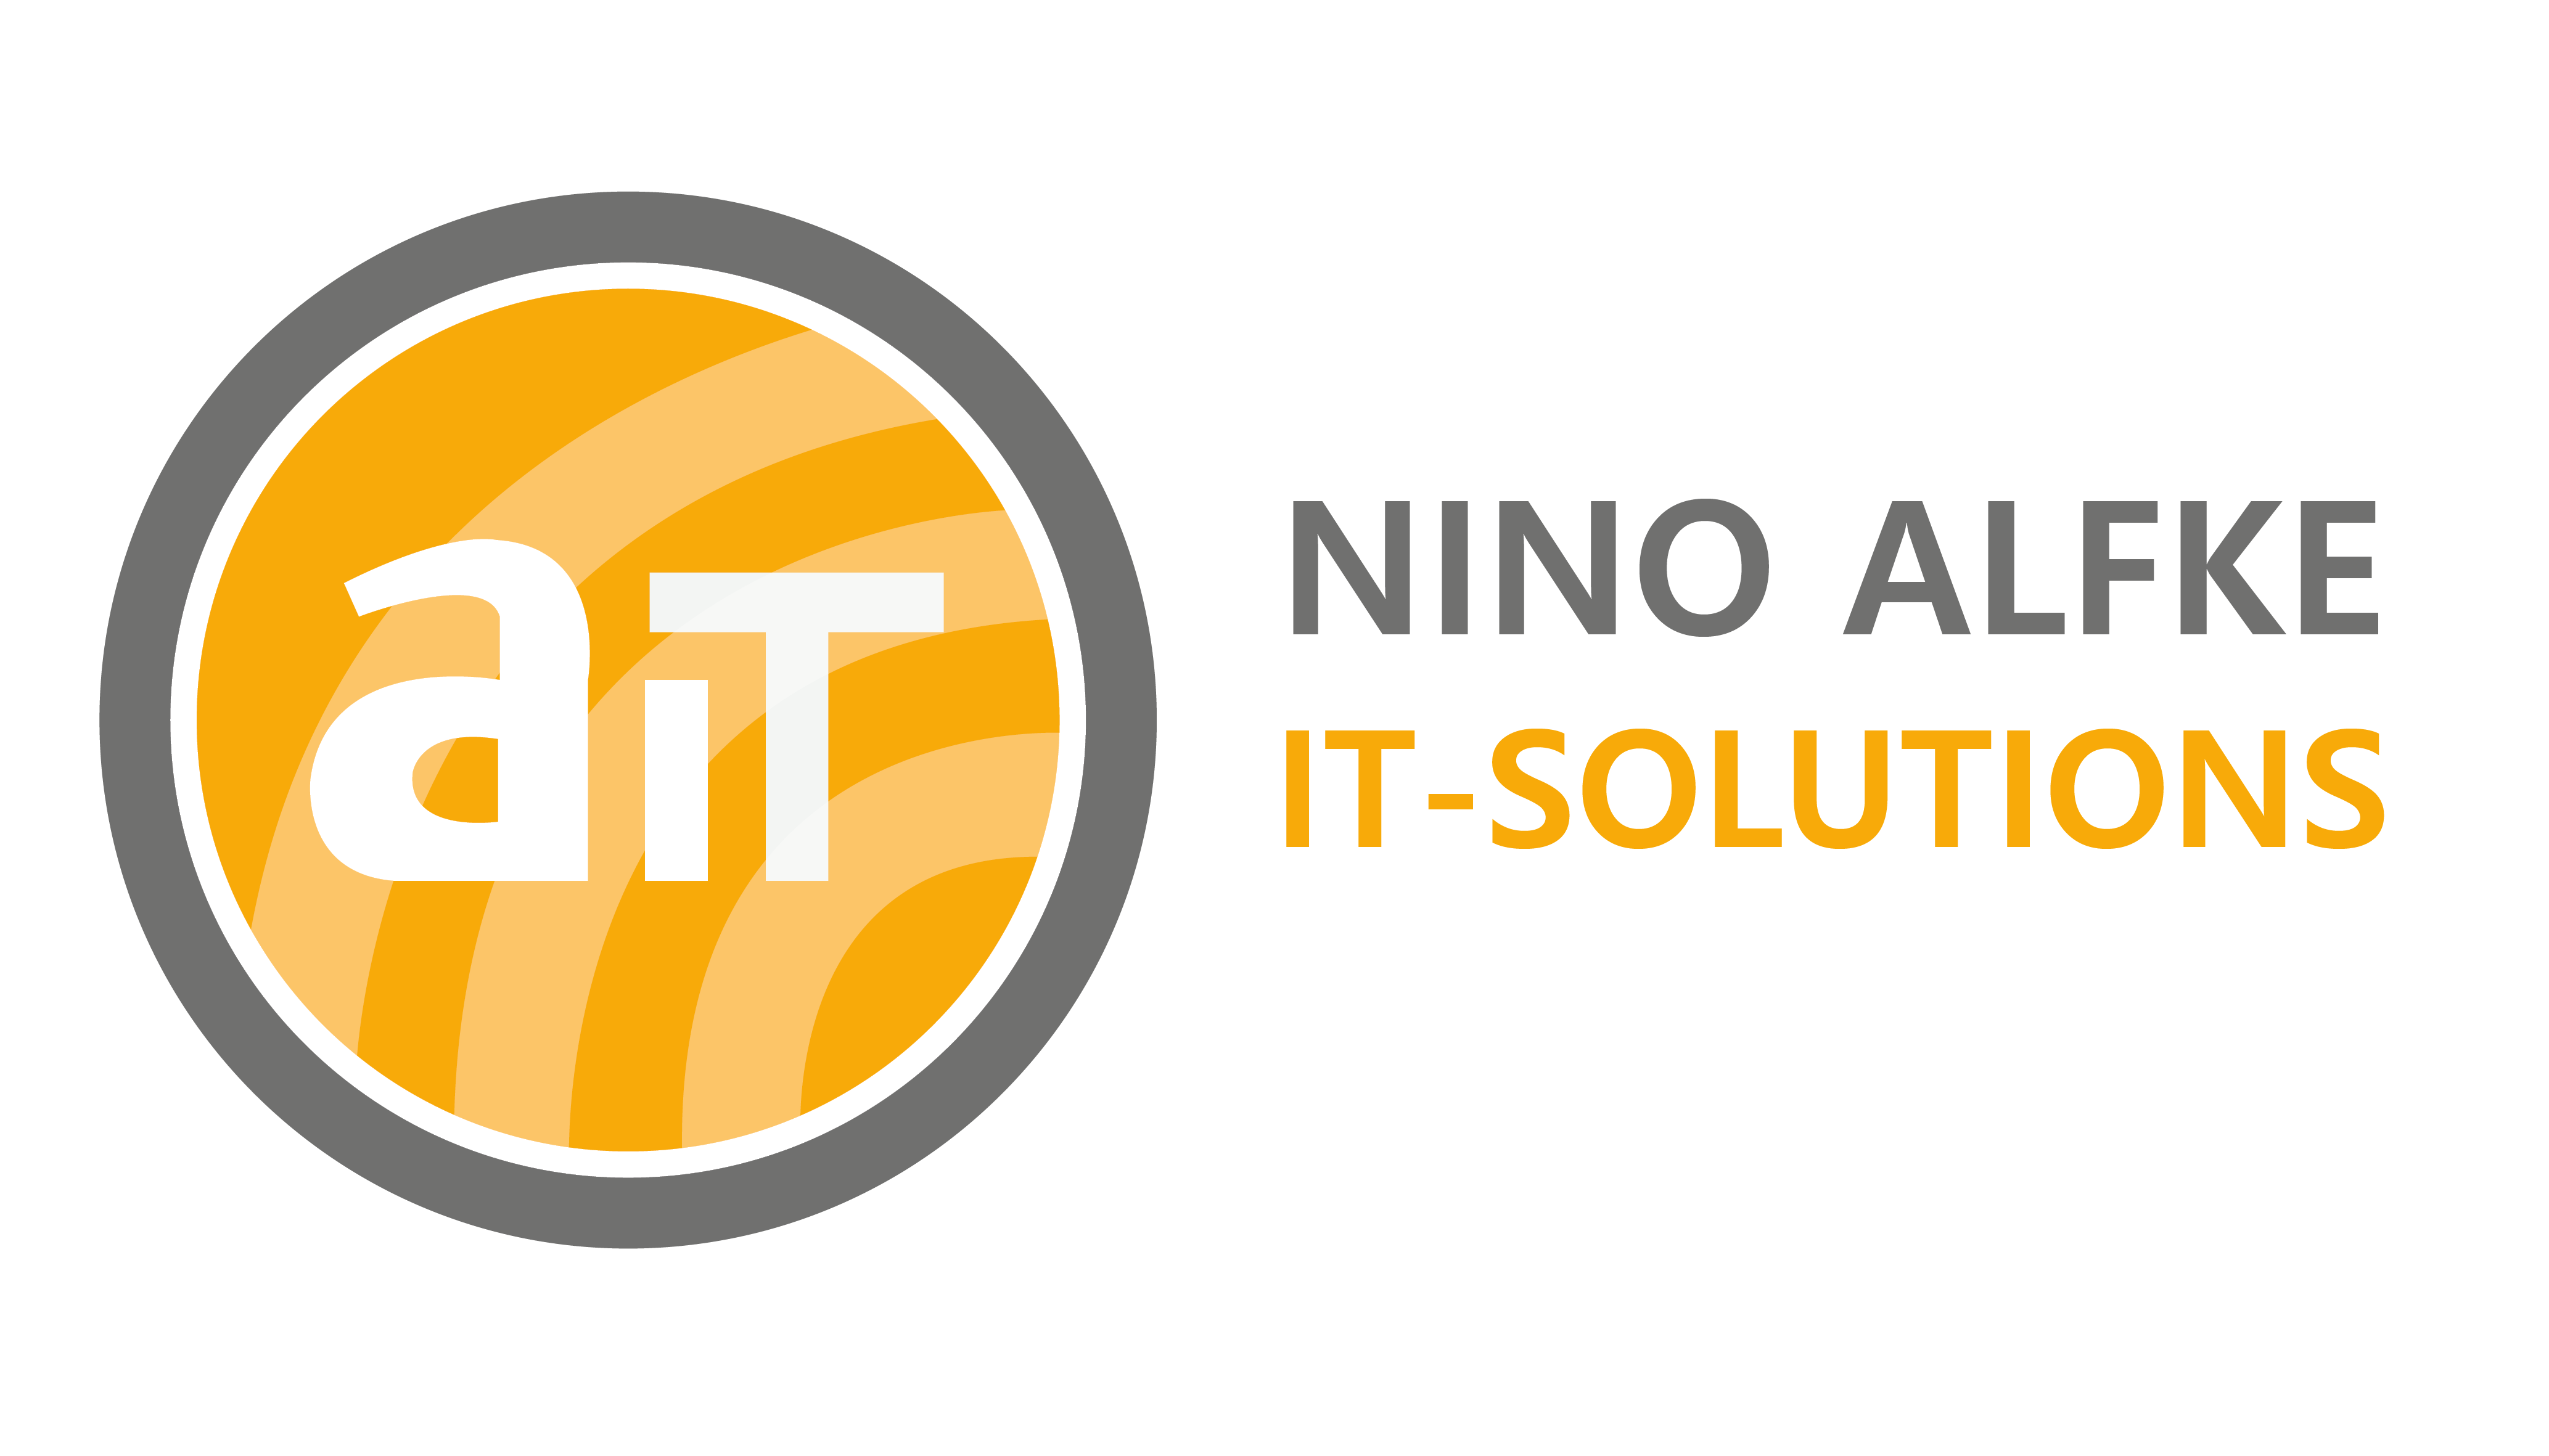 Alfke IT-Solutions